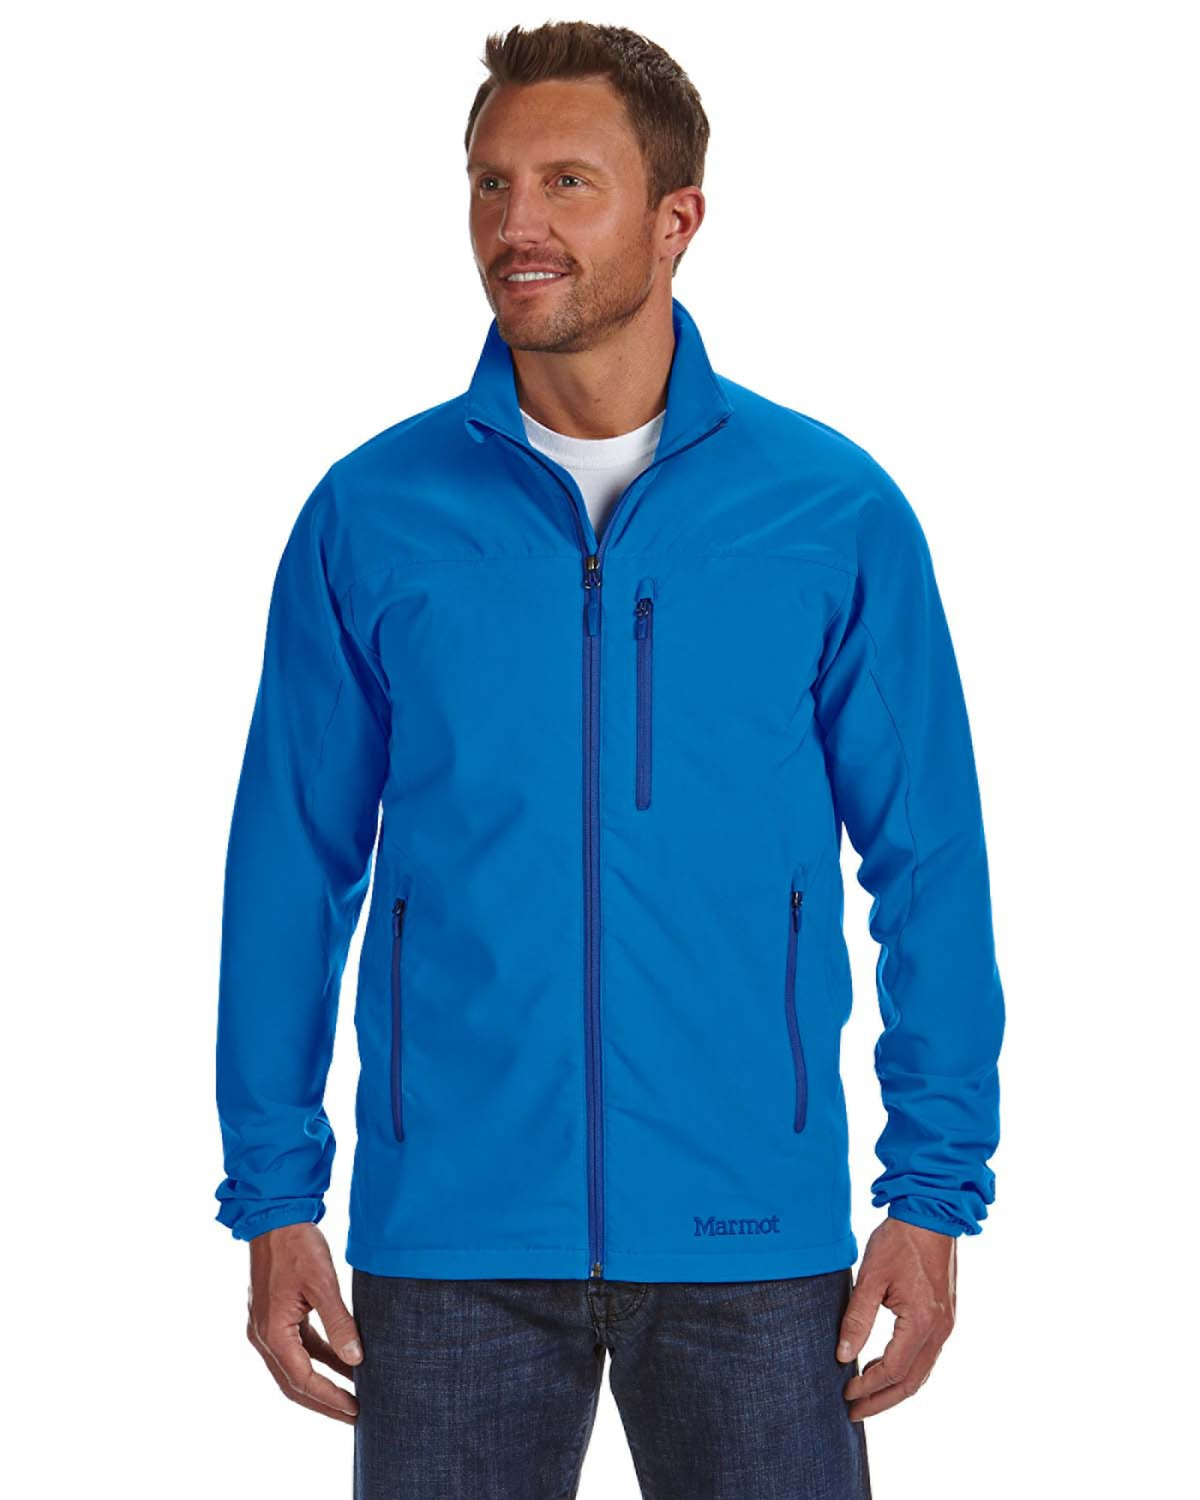 Marmot - 98260, Men's Tempo Jacket - Logo Masters International